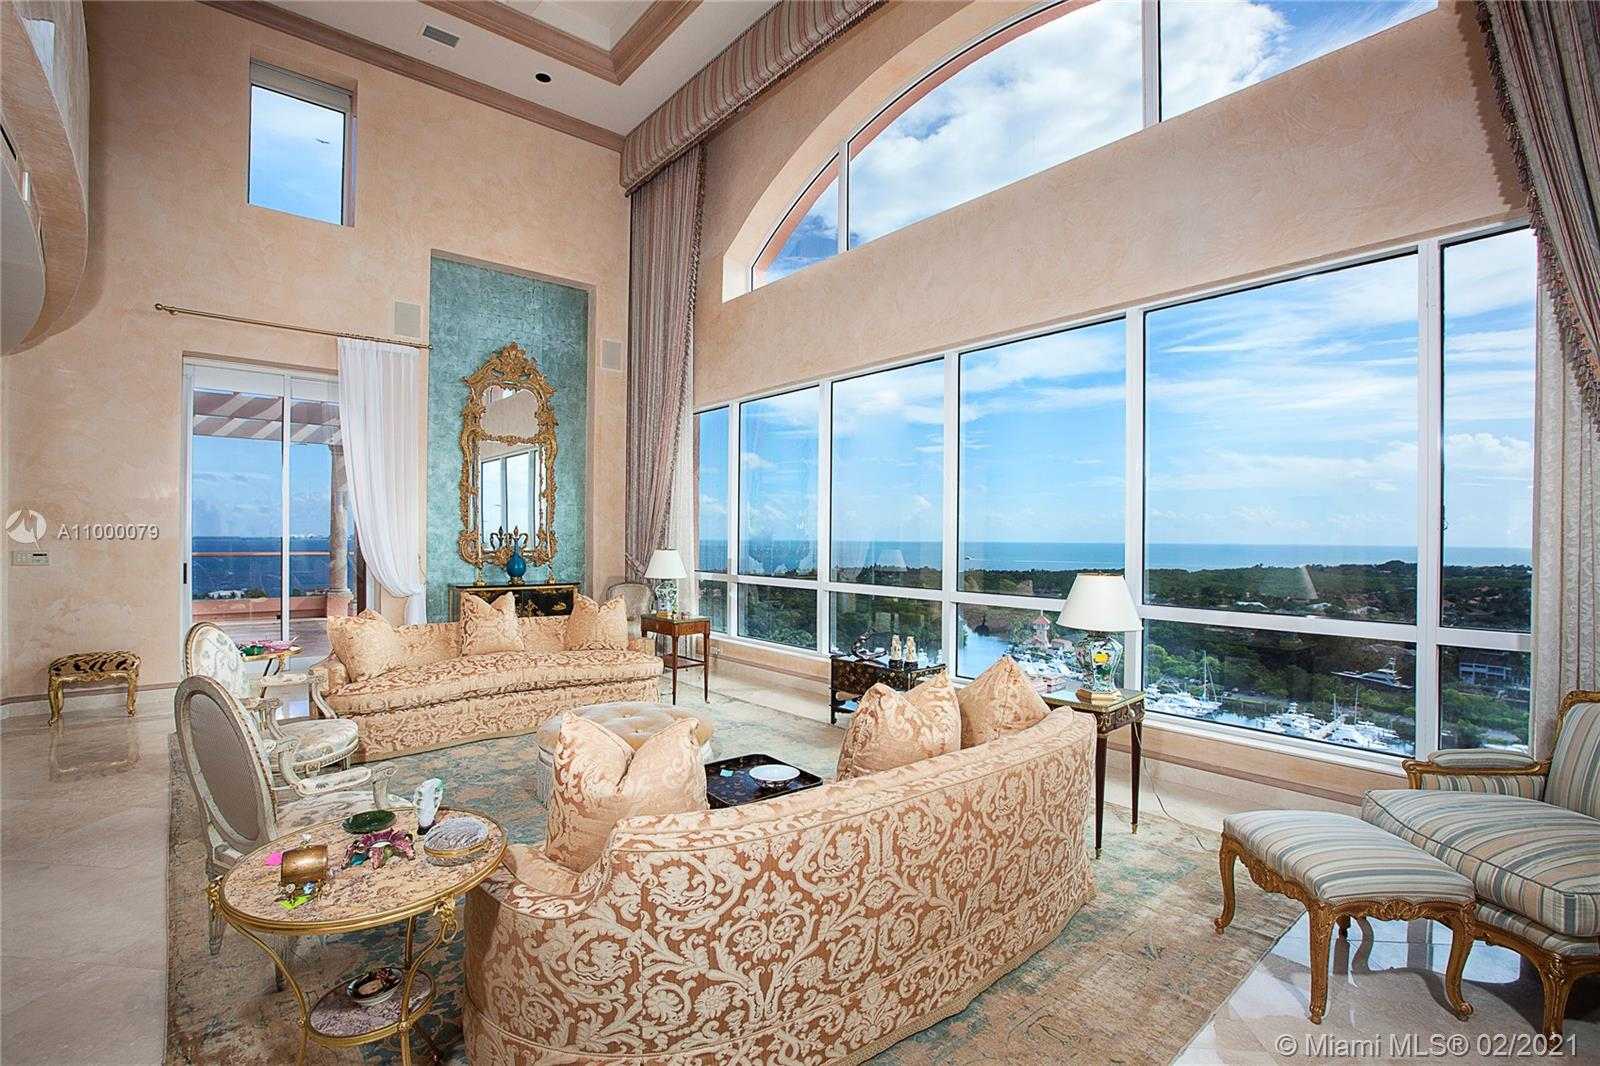 This stunning 6BR/6+1BA Tower Suite in Coral Gables is an Estate in the Sky offering 10,190 SF of luxury spanning 2 stories. Home features a private elevator, fine marble floors, Venetian plaster walls, crown moldings, a beauty area/massage room, a theater & a large library. The spacious great room boasts double high ceilings & walls of glass plus a private dining salon both w/amazing views. The eat-in gourmet kitchen sports top-of-the-line-appliances & has a separate breakfast area. An elegant 2nd floor principal suite w/double high ceiling, seating area & beautiful principal bathroom. 6 terraces provide endless views to Biscayne Bay, Miami Beach, Key Biscayne and to downtown Miami. Unit includes 6 parking spaces & a storage room. 5-star amenities complete this amazing offering.